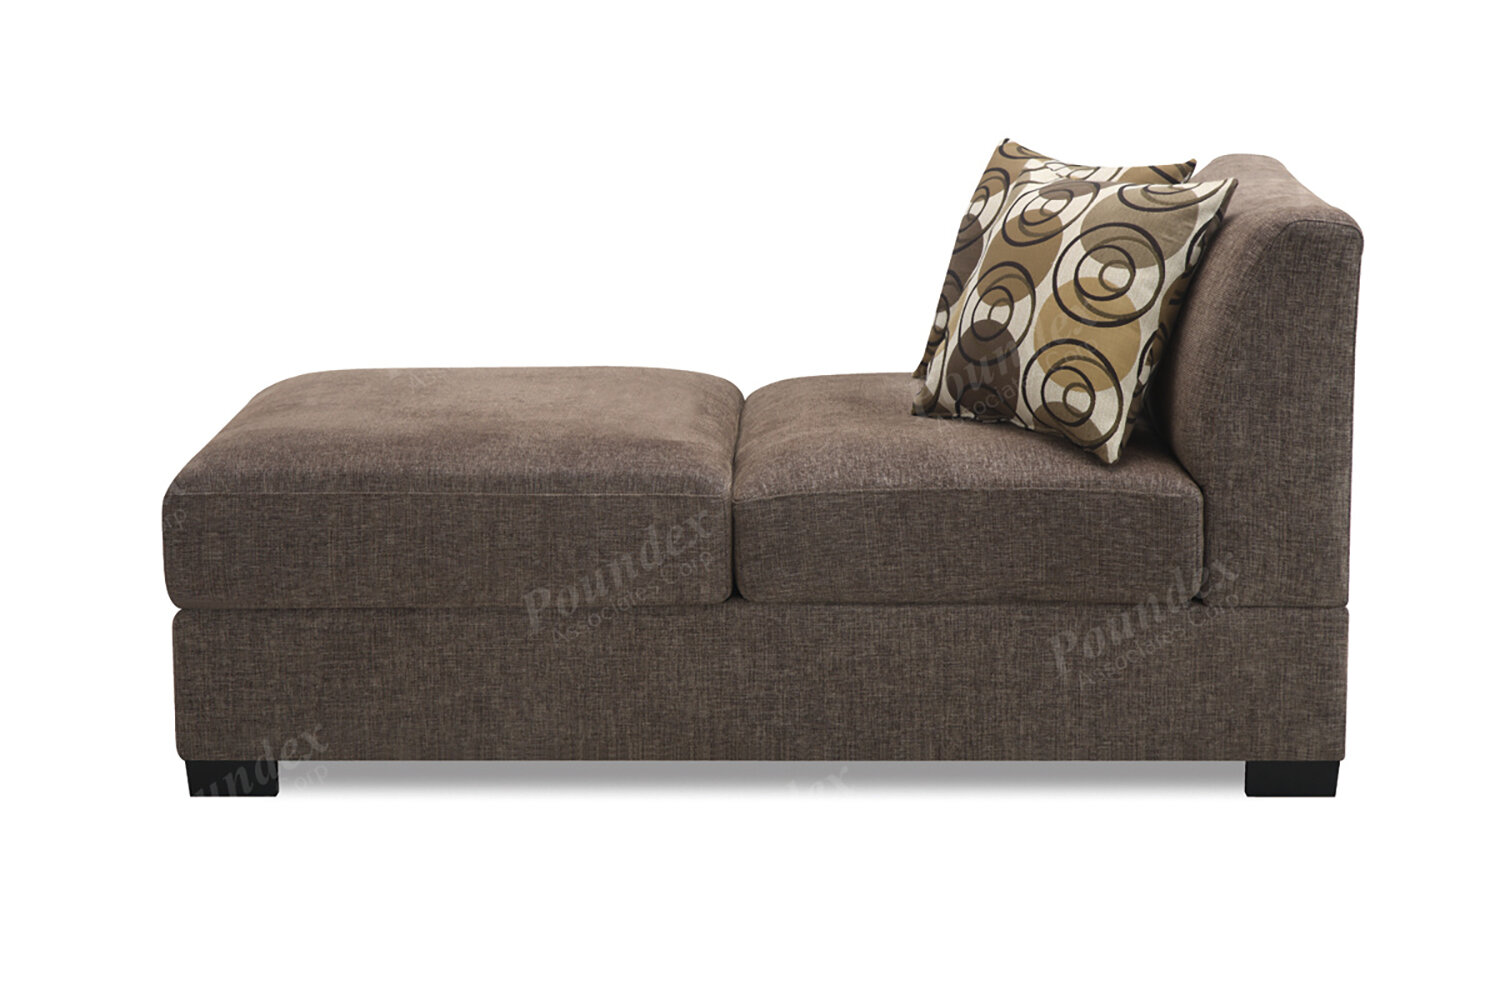 Red barrel studio boutte chaise lounge wayfair